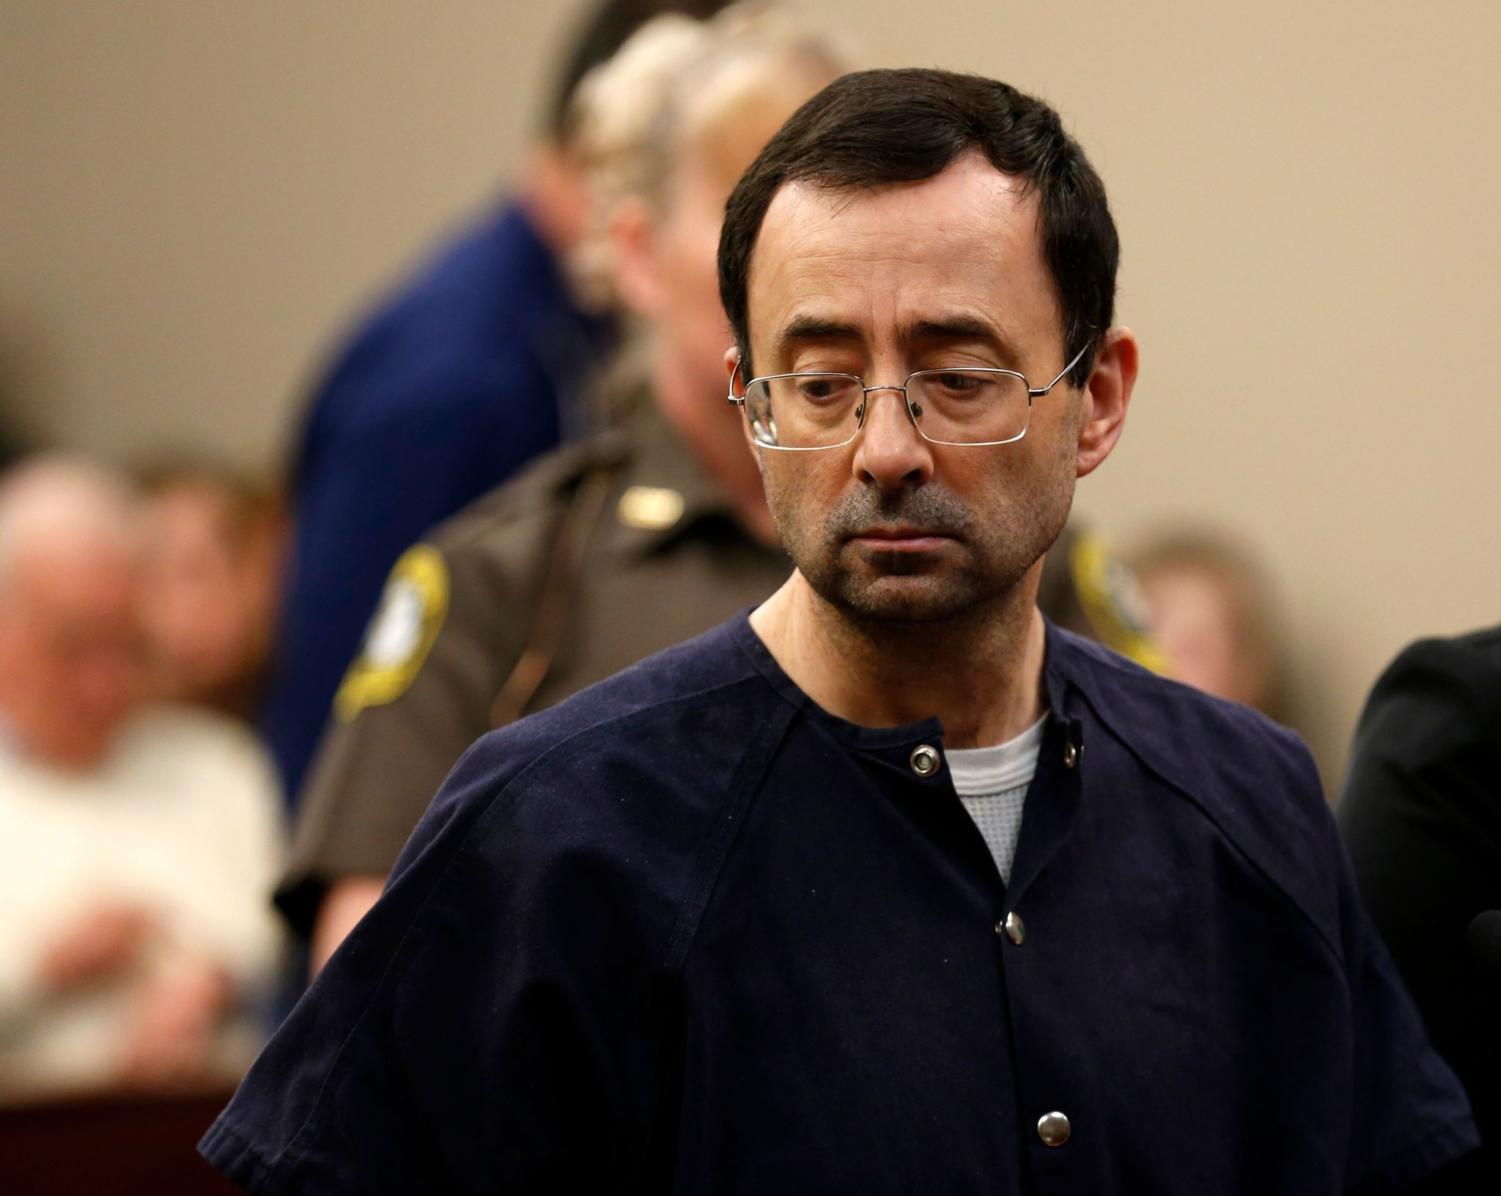 Dr. Lawrence G. Nassar was sentenced 40 to 175 years in prison